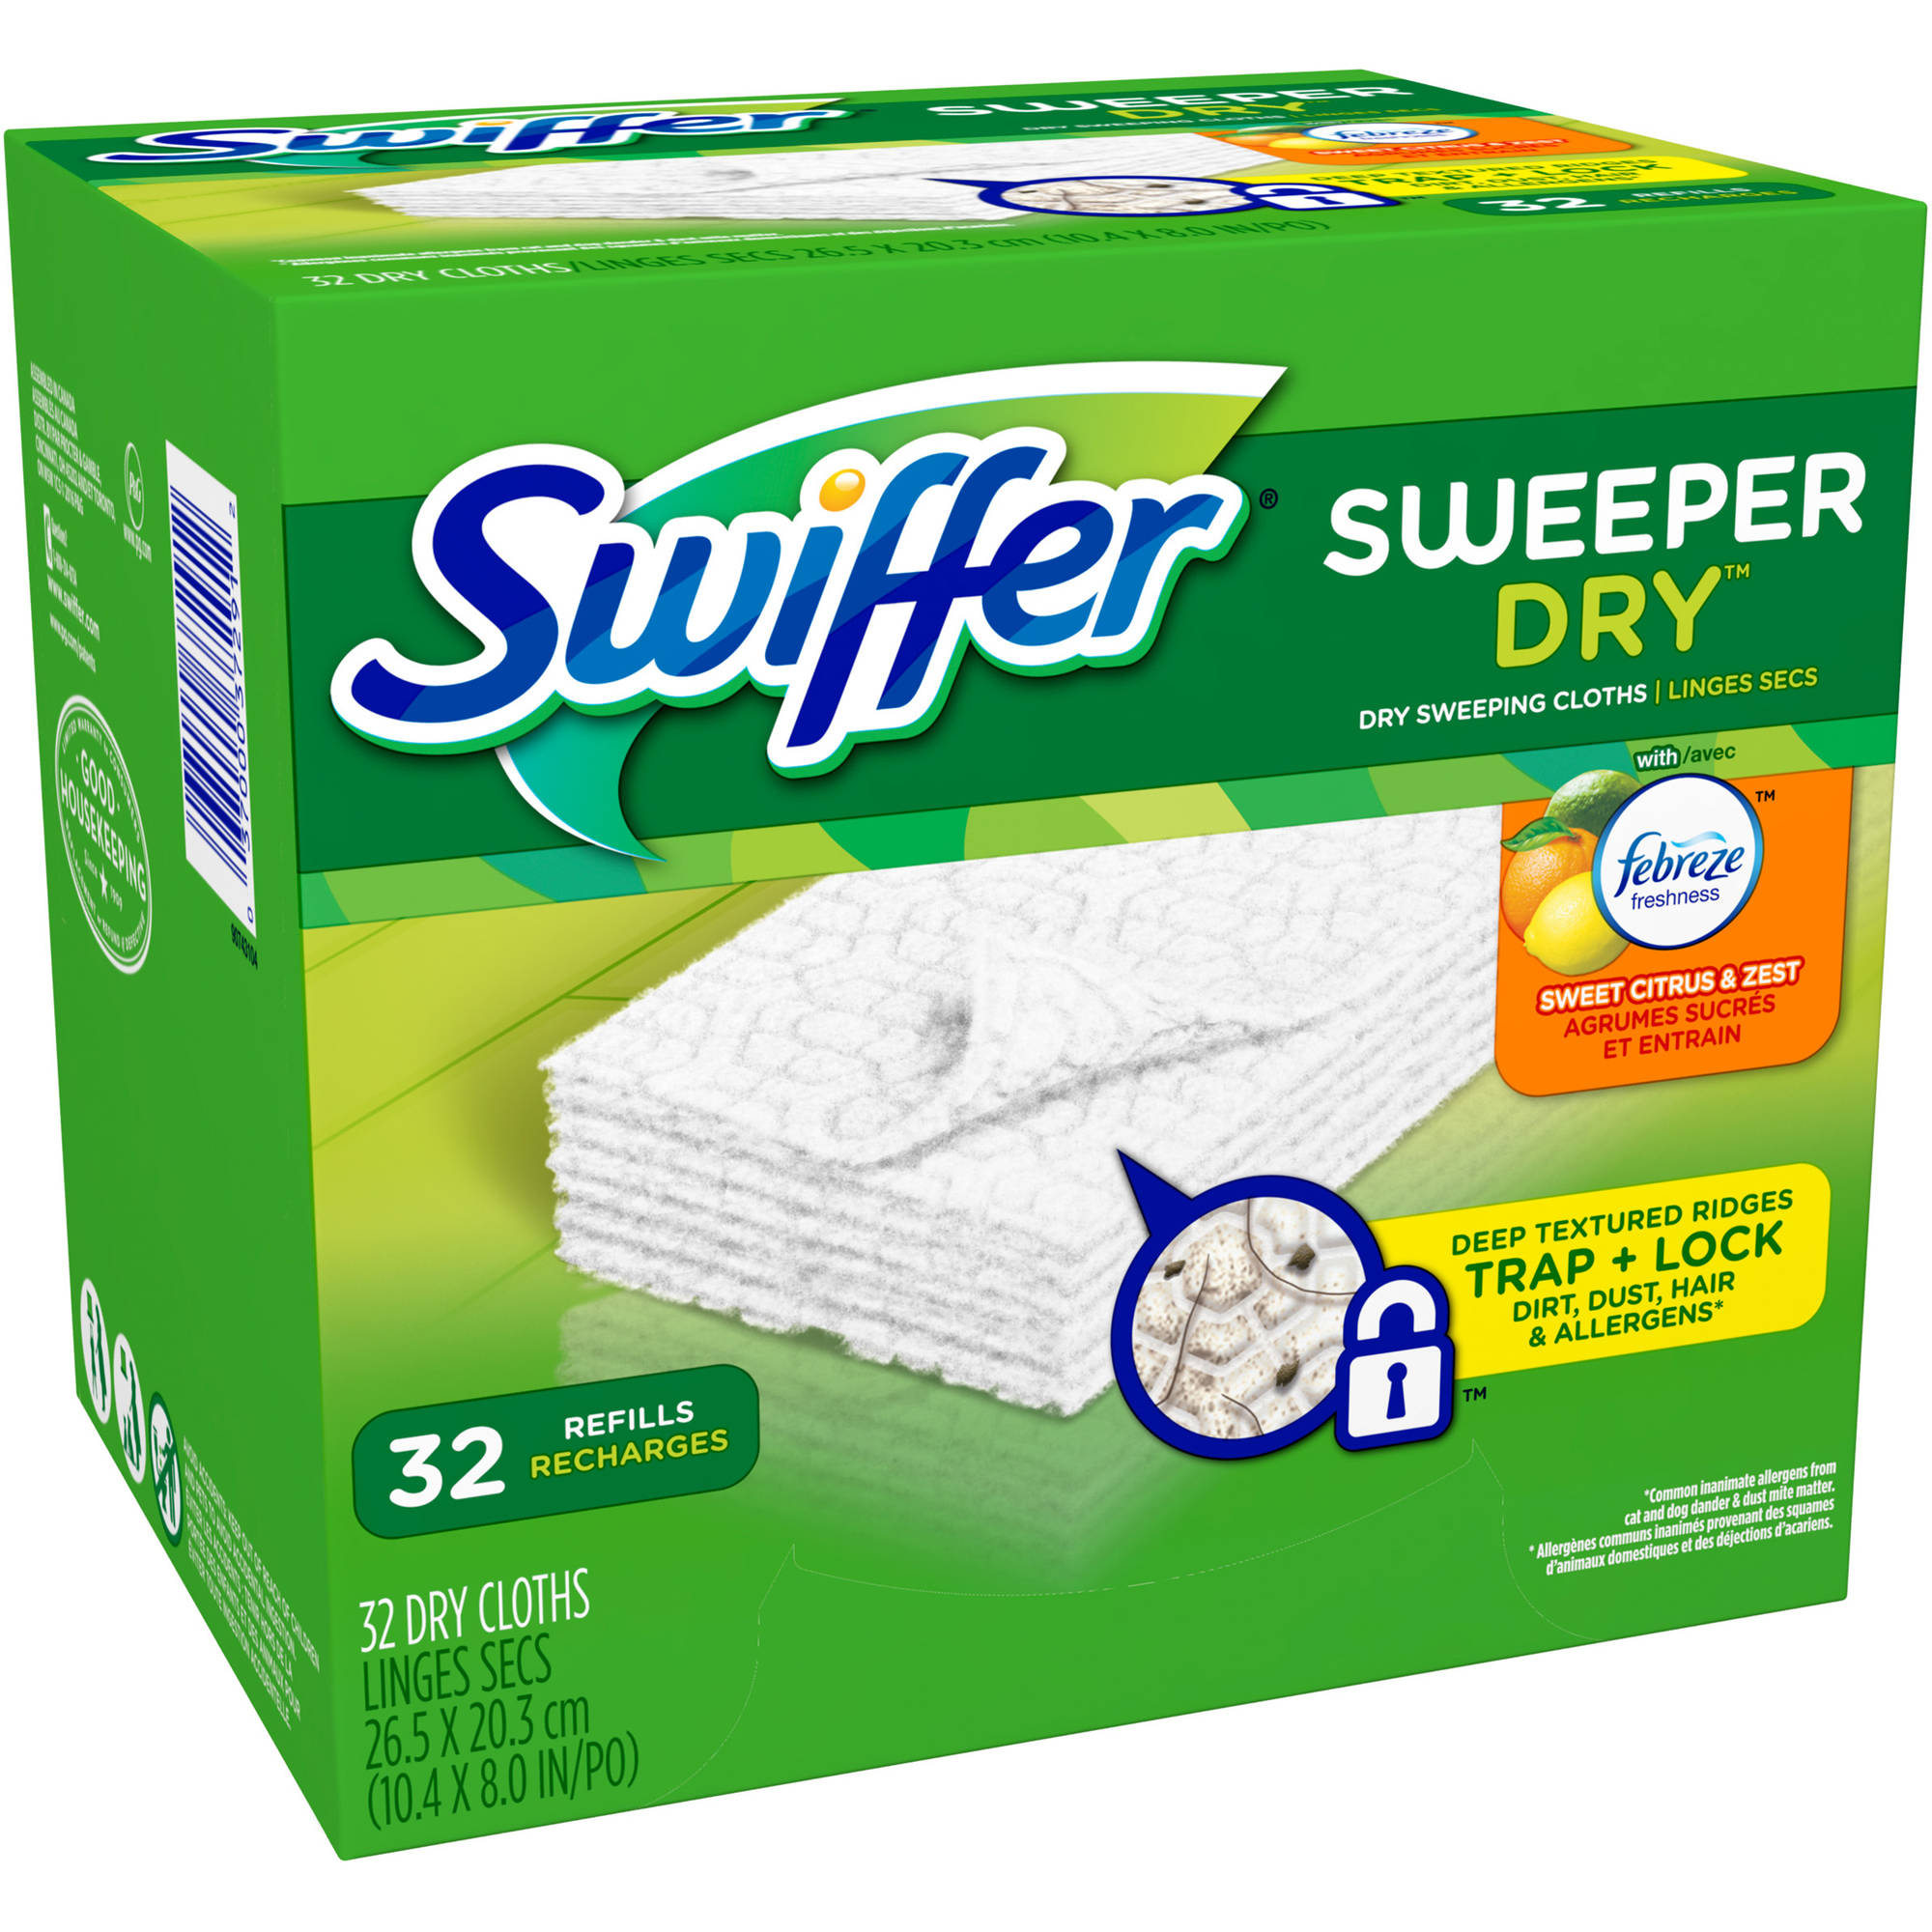 Swiffer Sweeper Vacuum Supply Dry Sweeping Refills, Citrus & Light, 32 ct